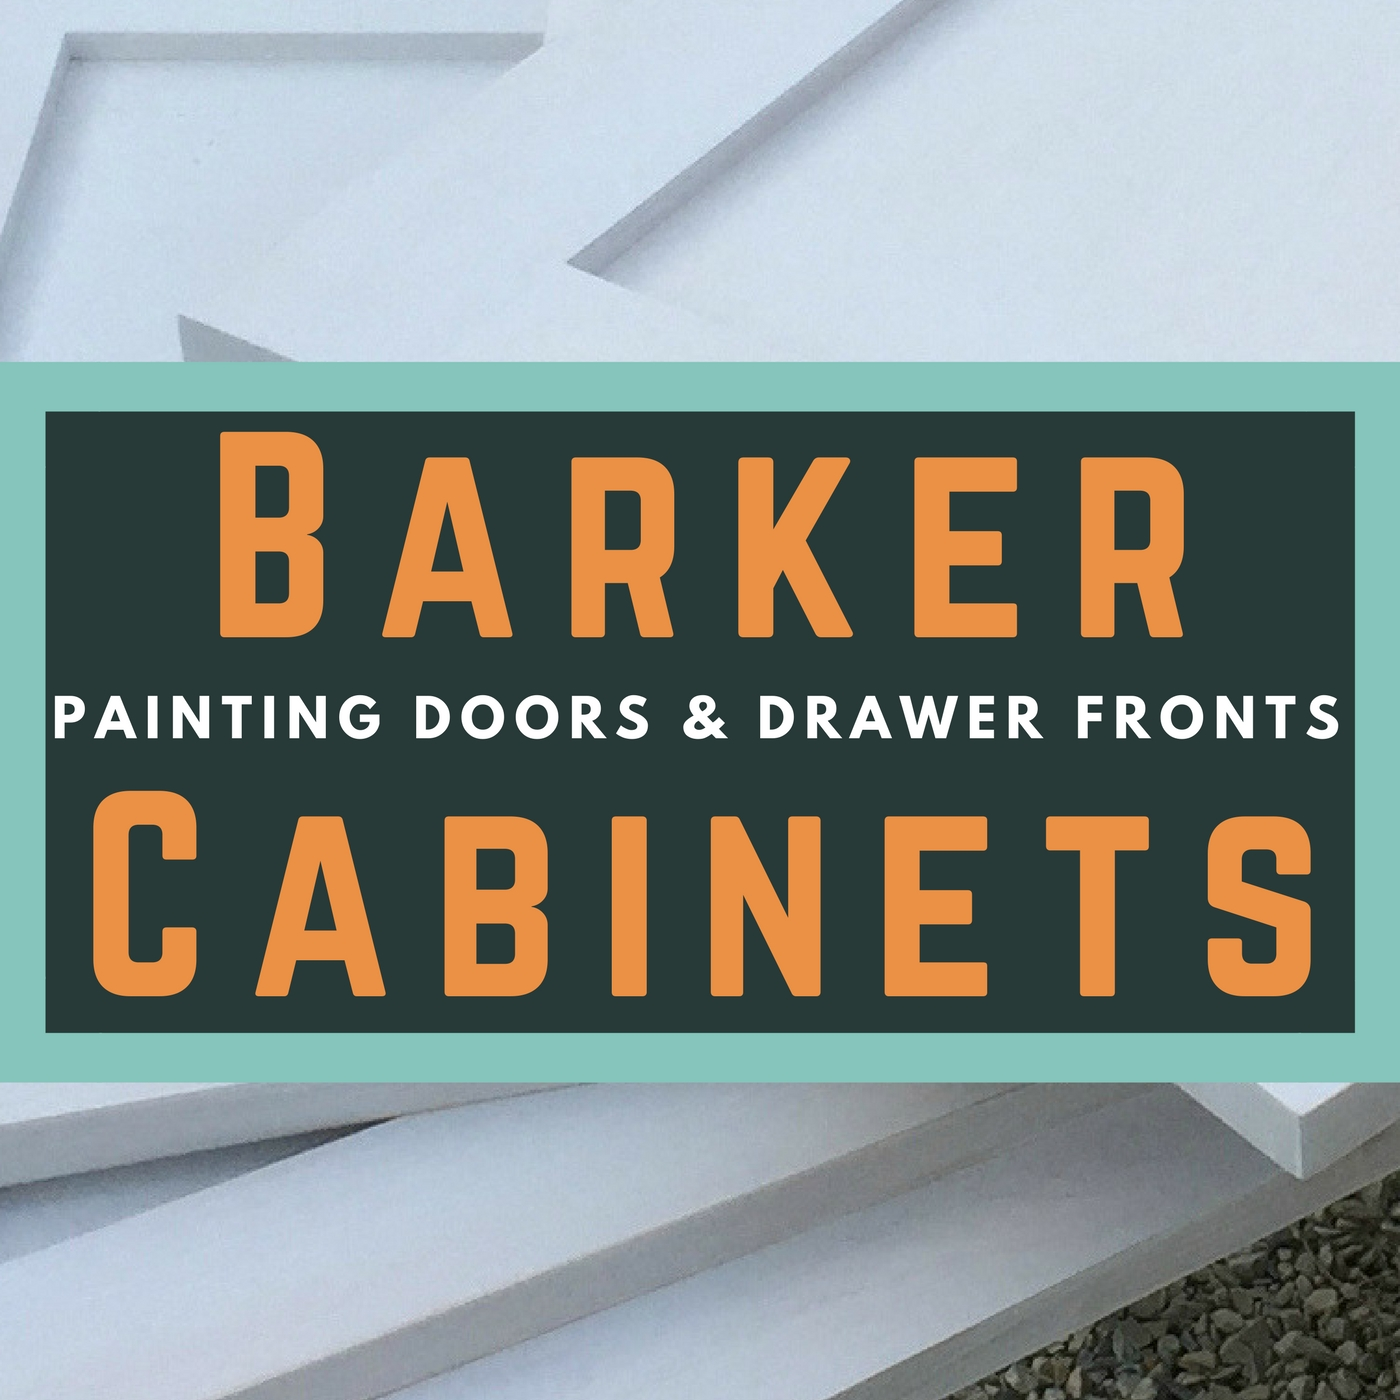 Barket Cabients -- painting doors and drawer fronts